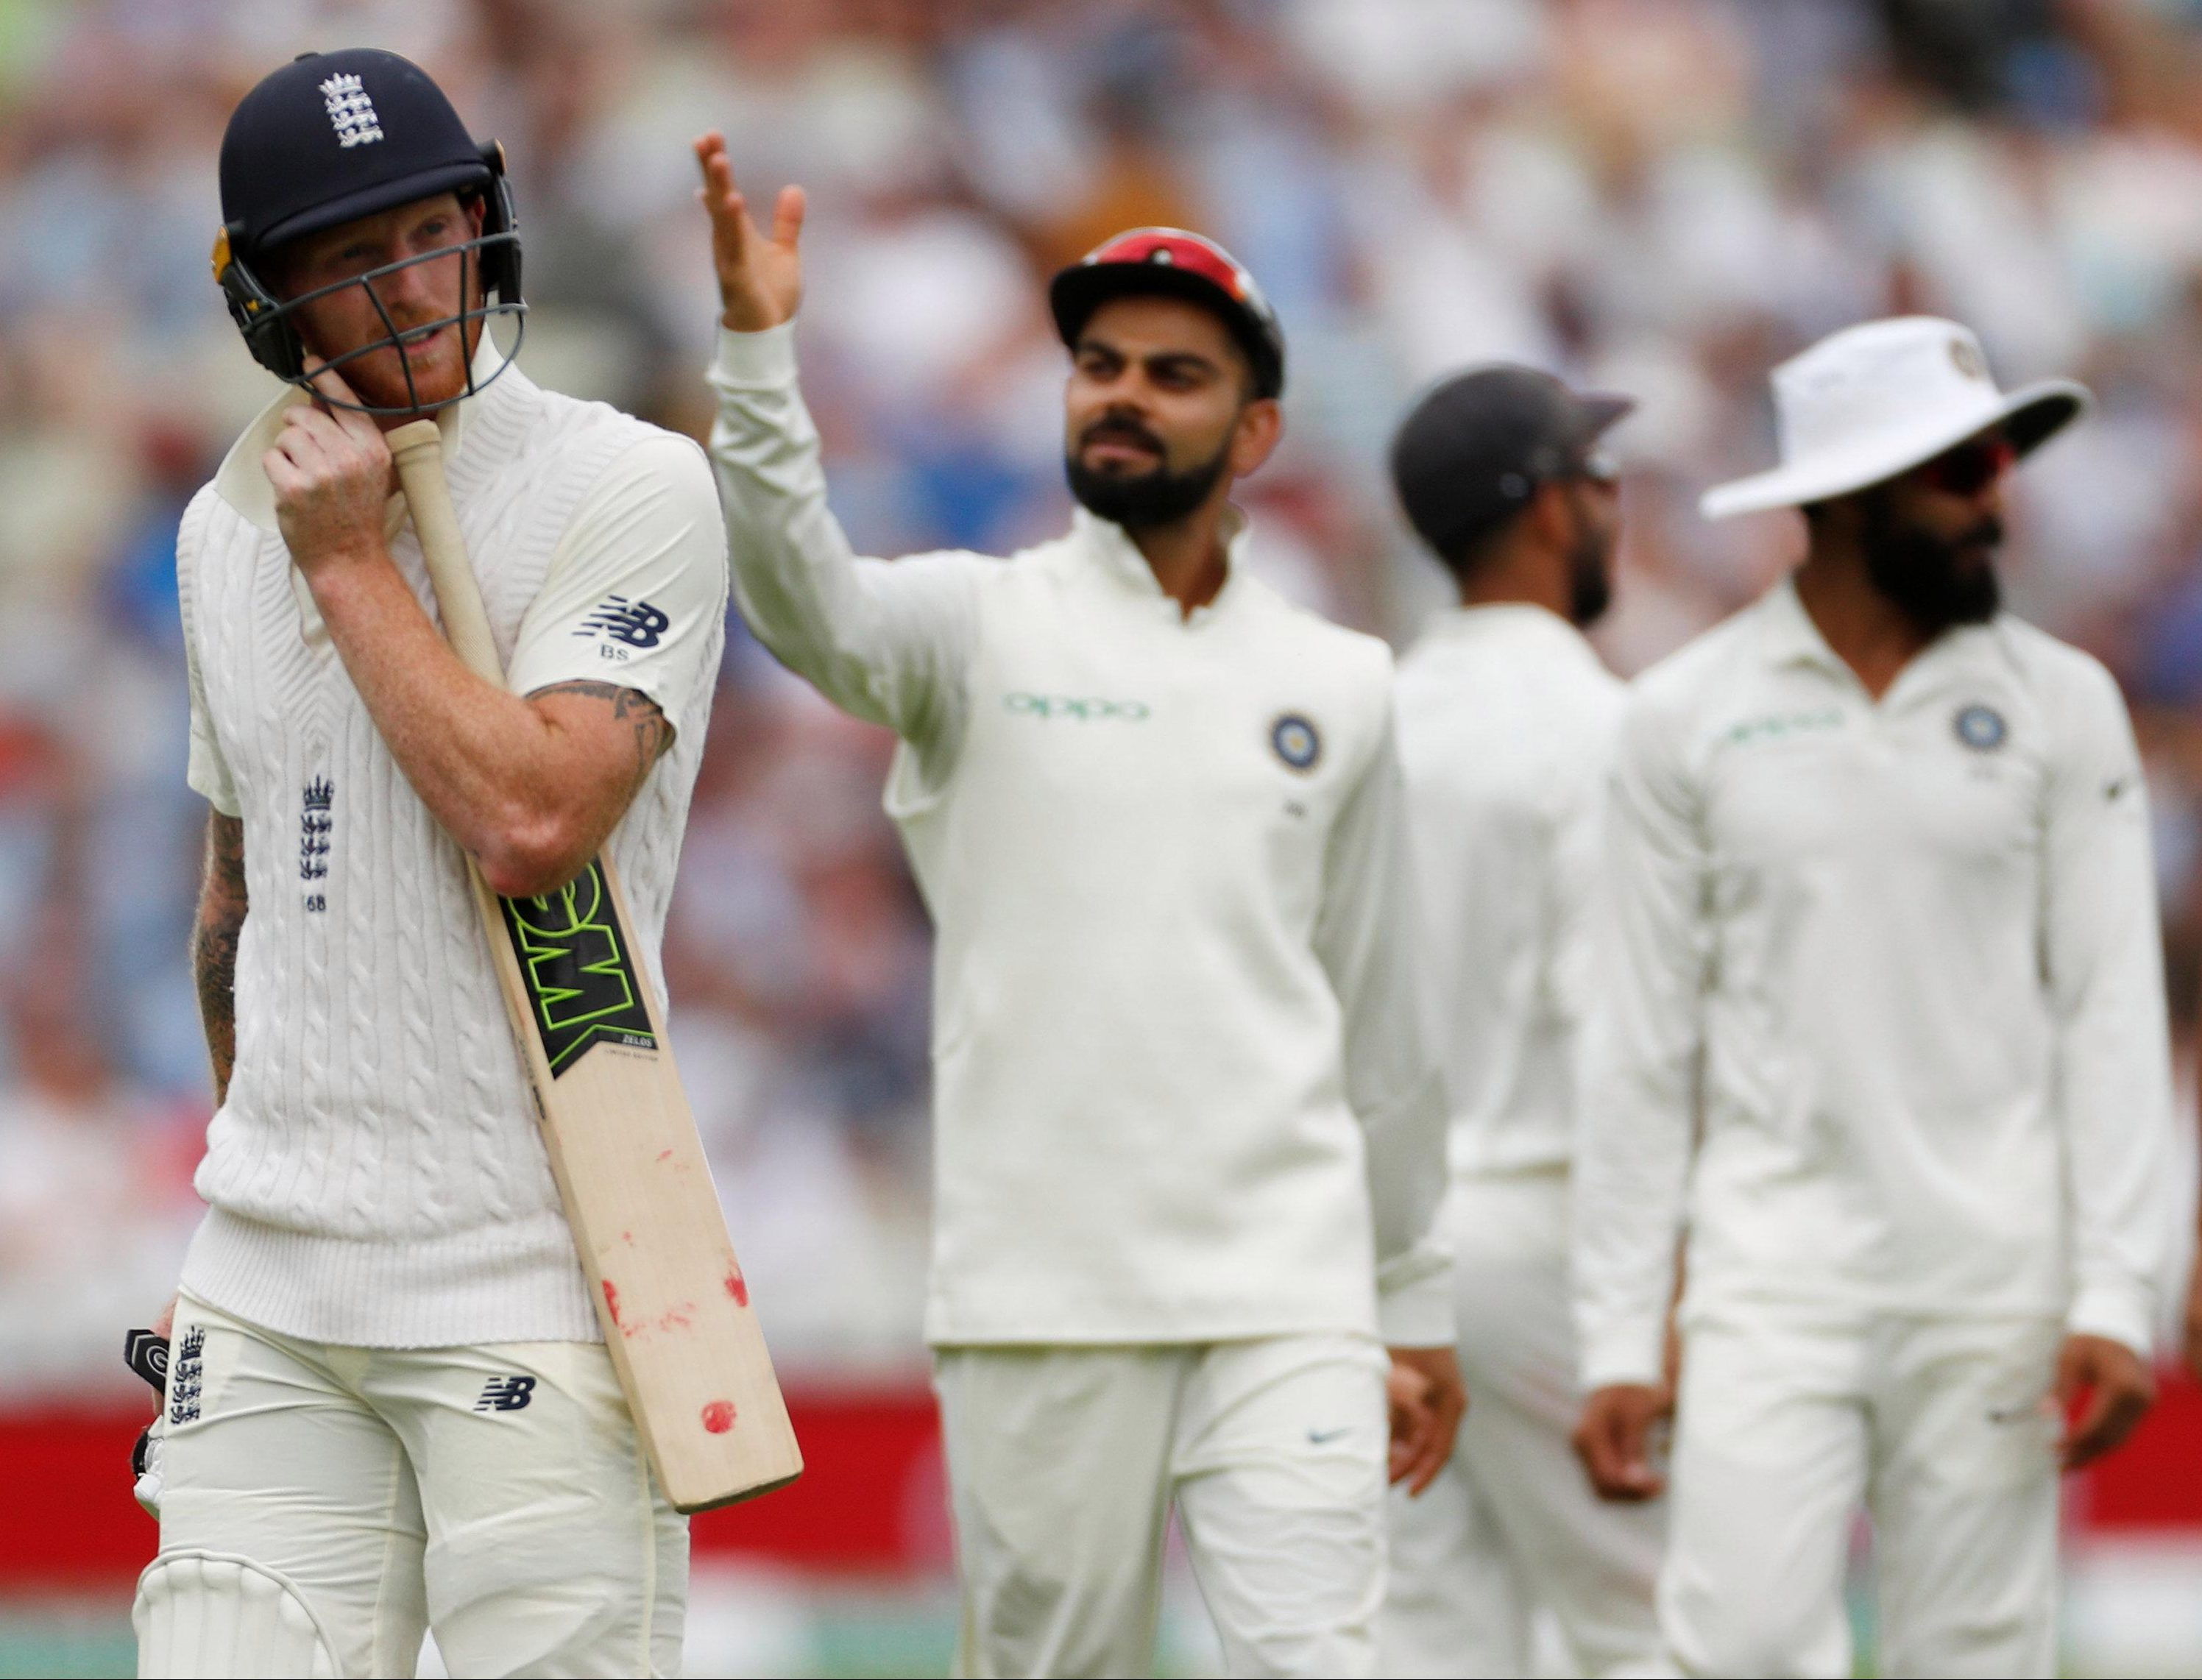 Ben Stokes was a key man for England in the First Test before missing the second match due to his trial - but has now been found not guilty of affray